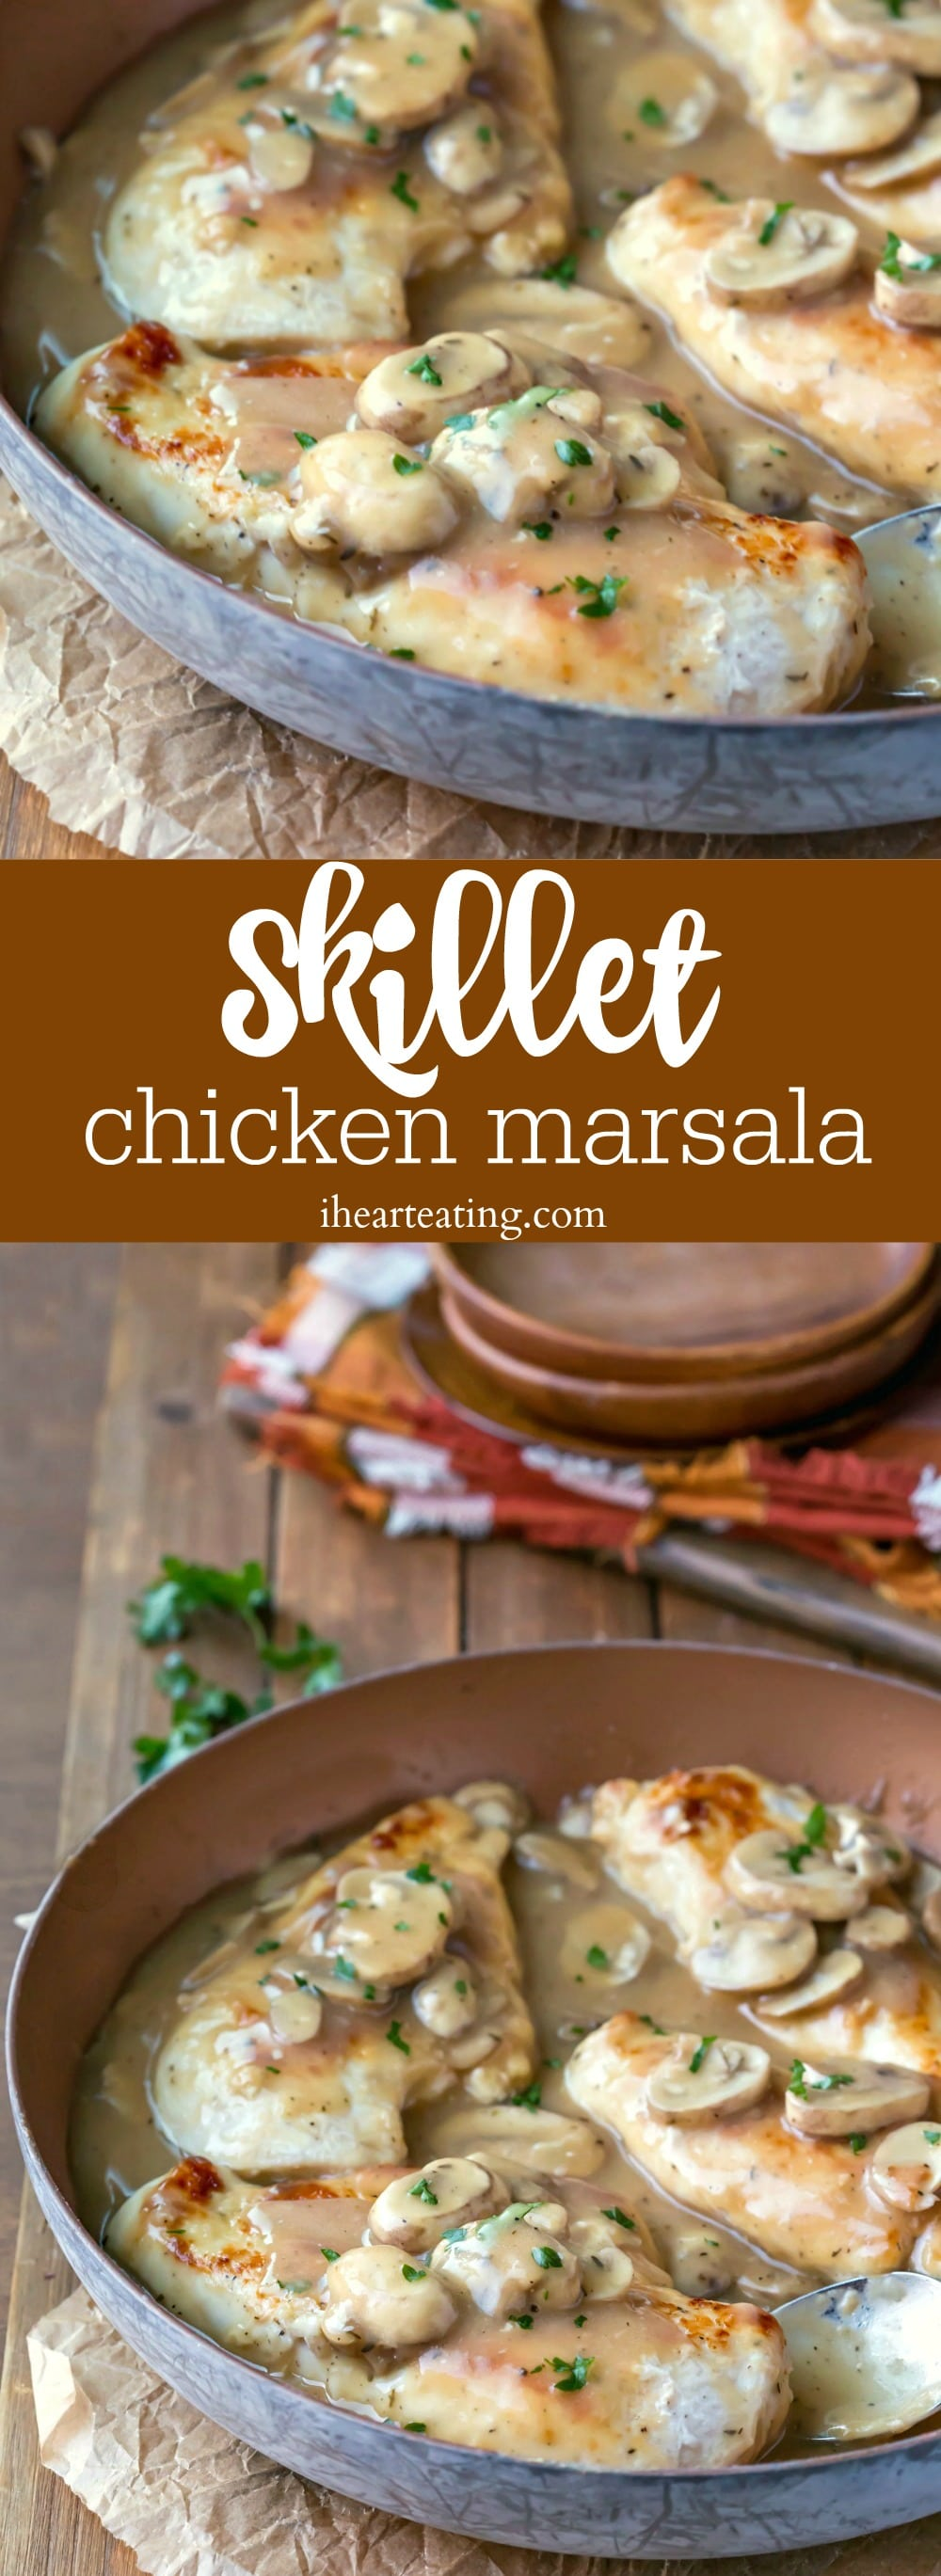 Skillet Chicken Marsala Recipe